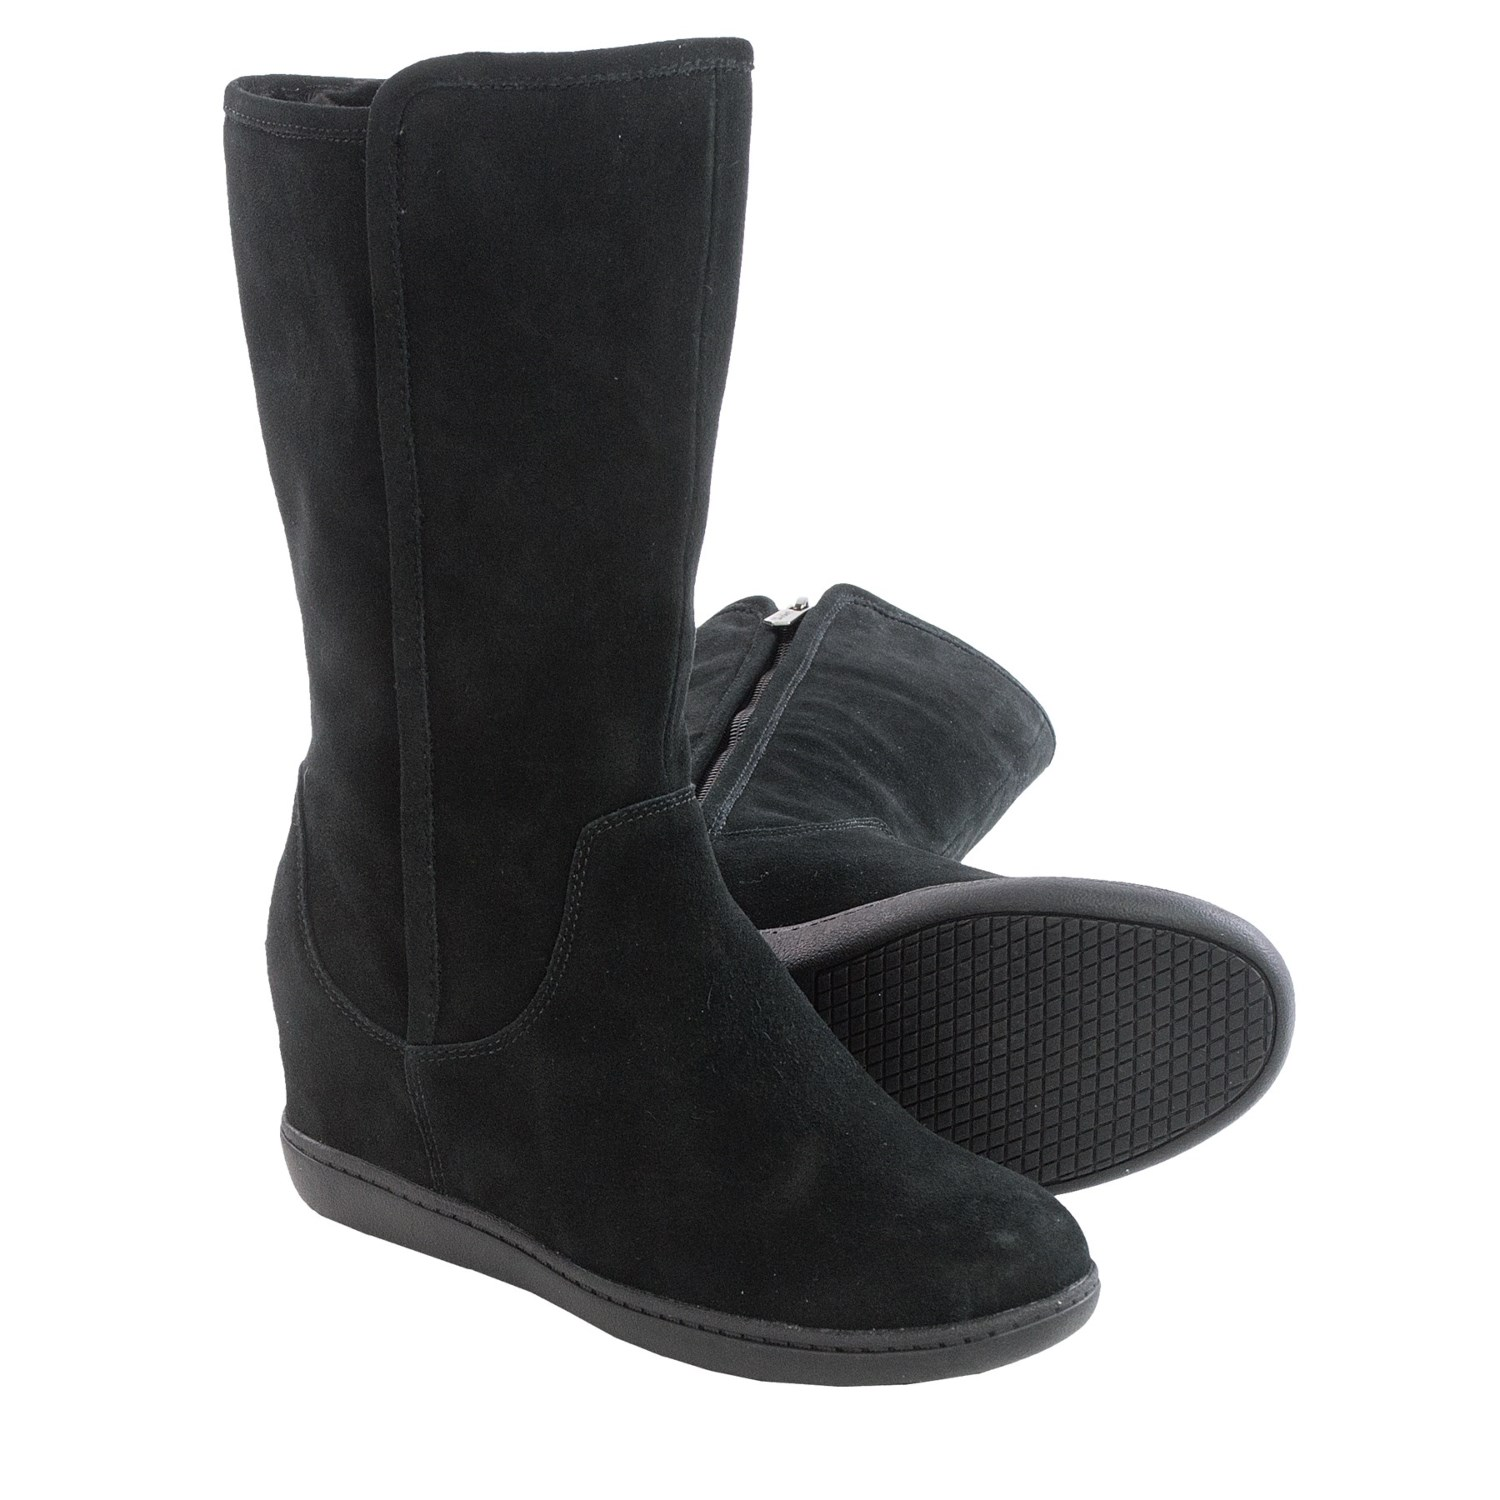 skechers plus 3 pulley suede boots for 104um